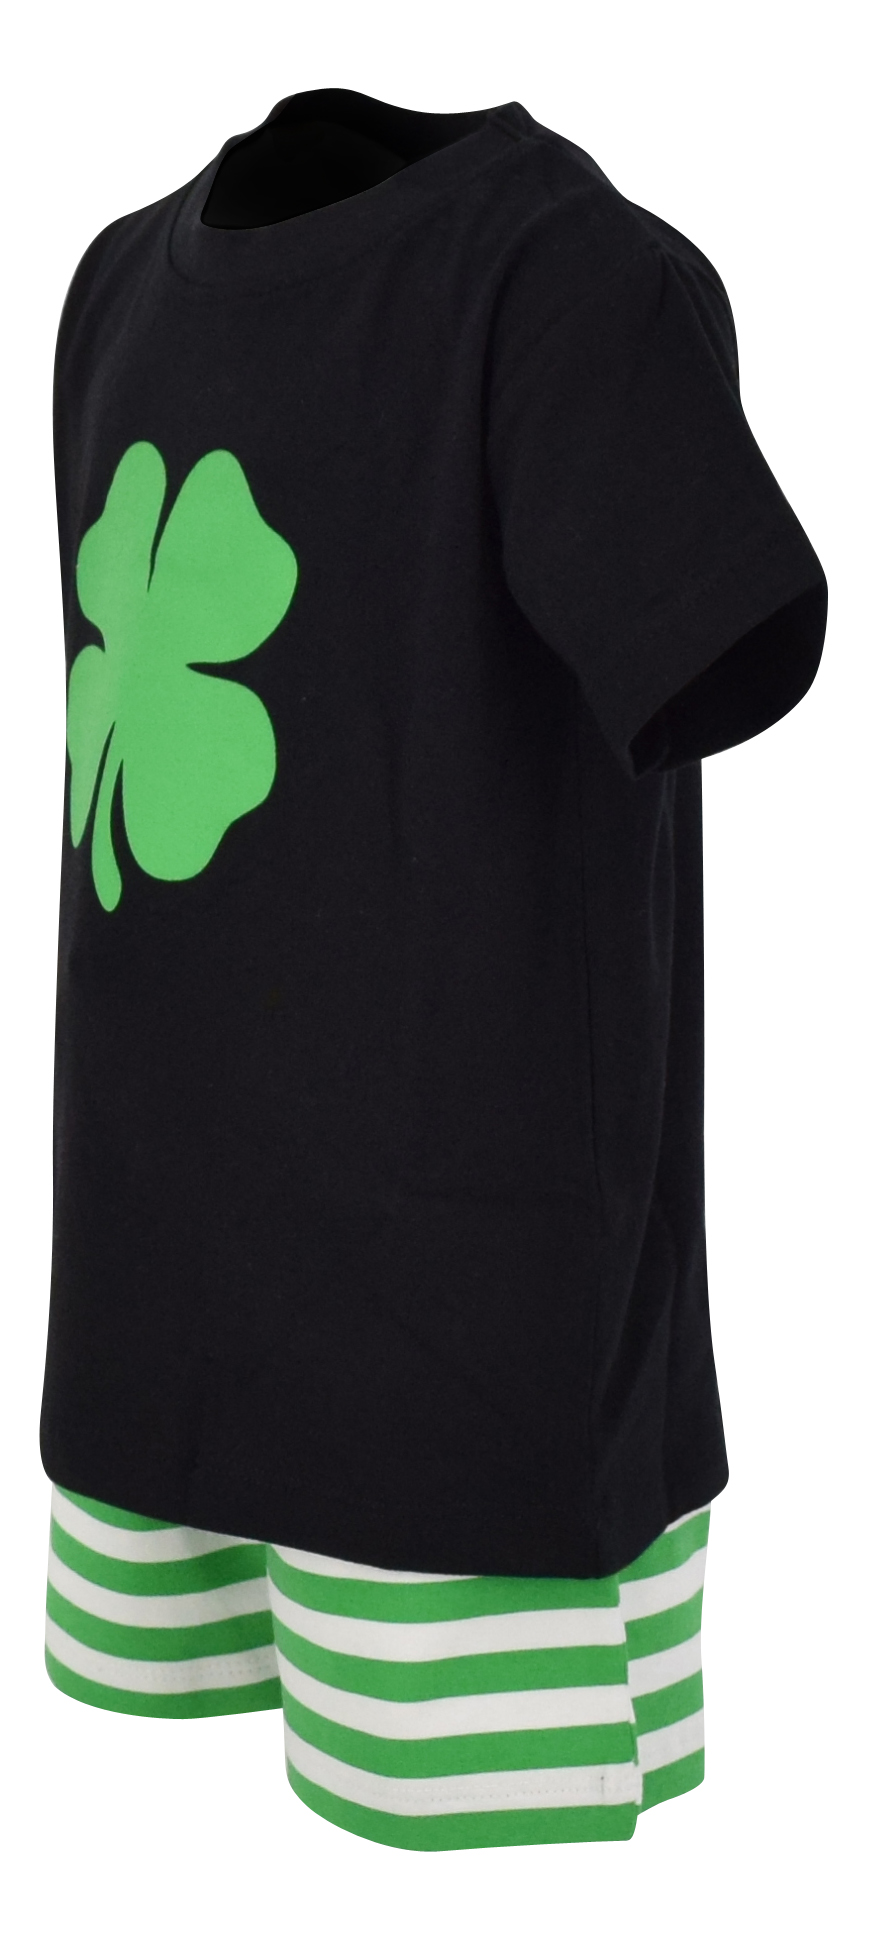 Boys-2-Piece-ST-Patricks-Day-Clover-Outfit-2t-3t-4t-5-6-7-8-Toddler-Kids-Clothes thumbnail 20